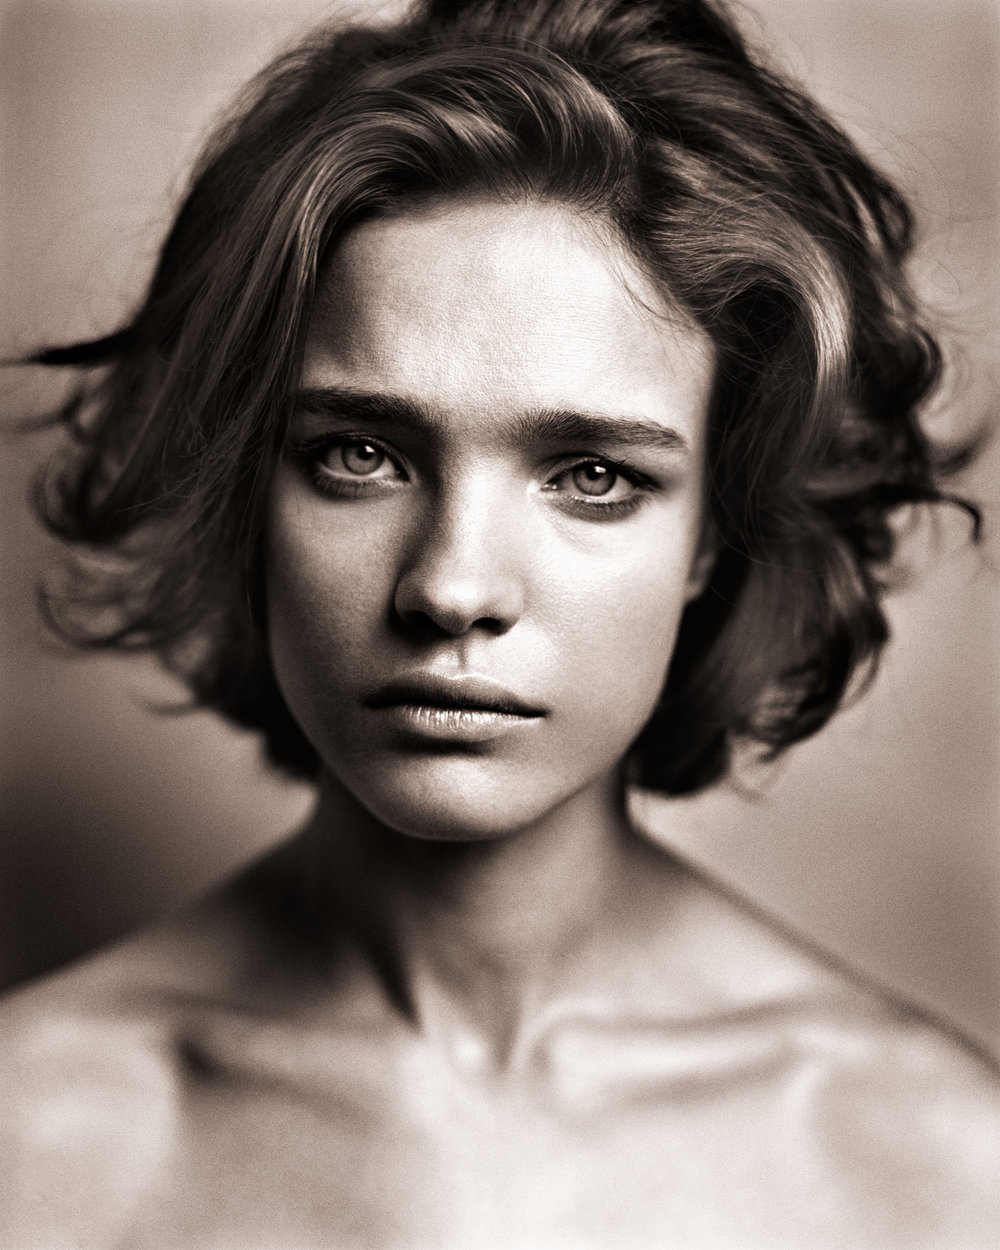 Natalia, © Vincent Peters / Courtesy of CAMERA WORK